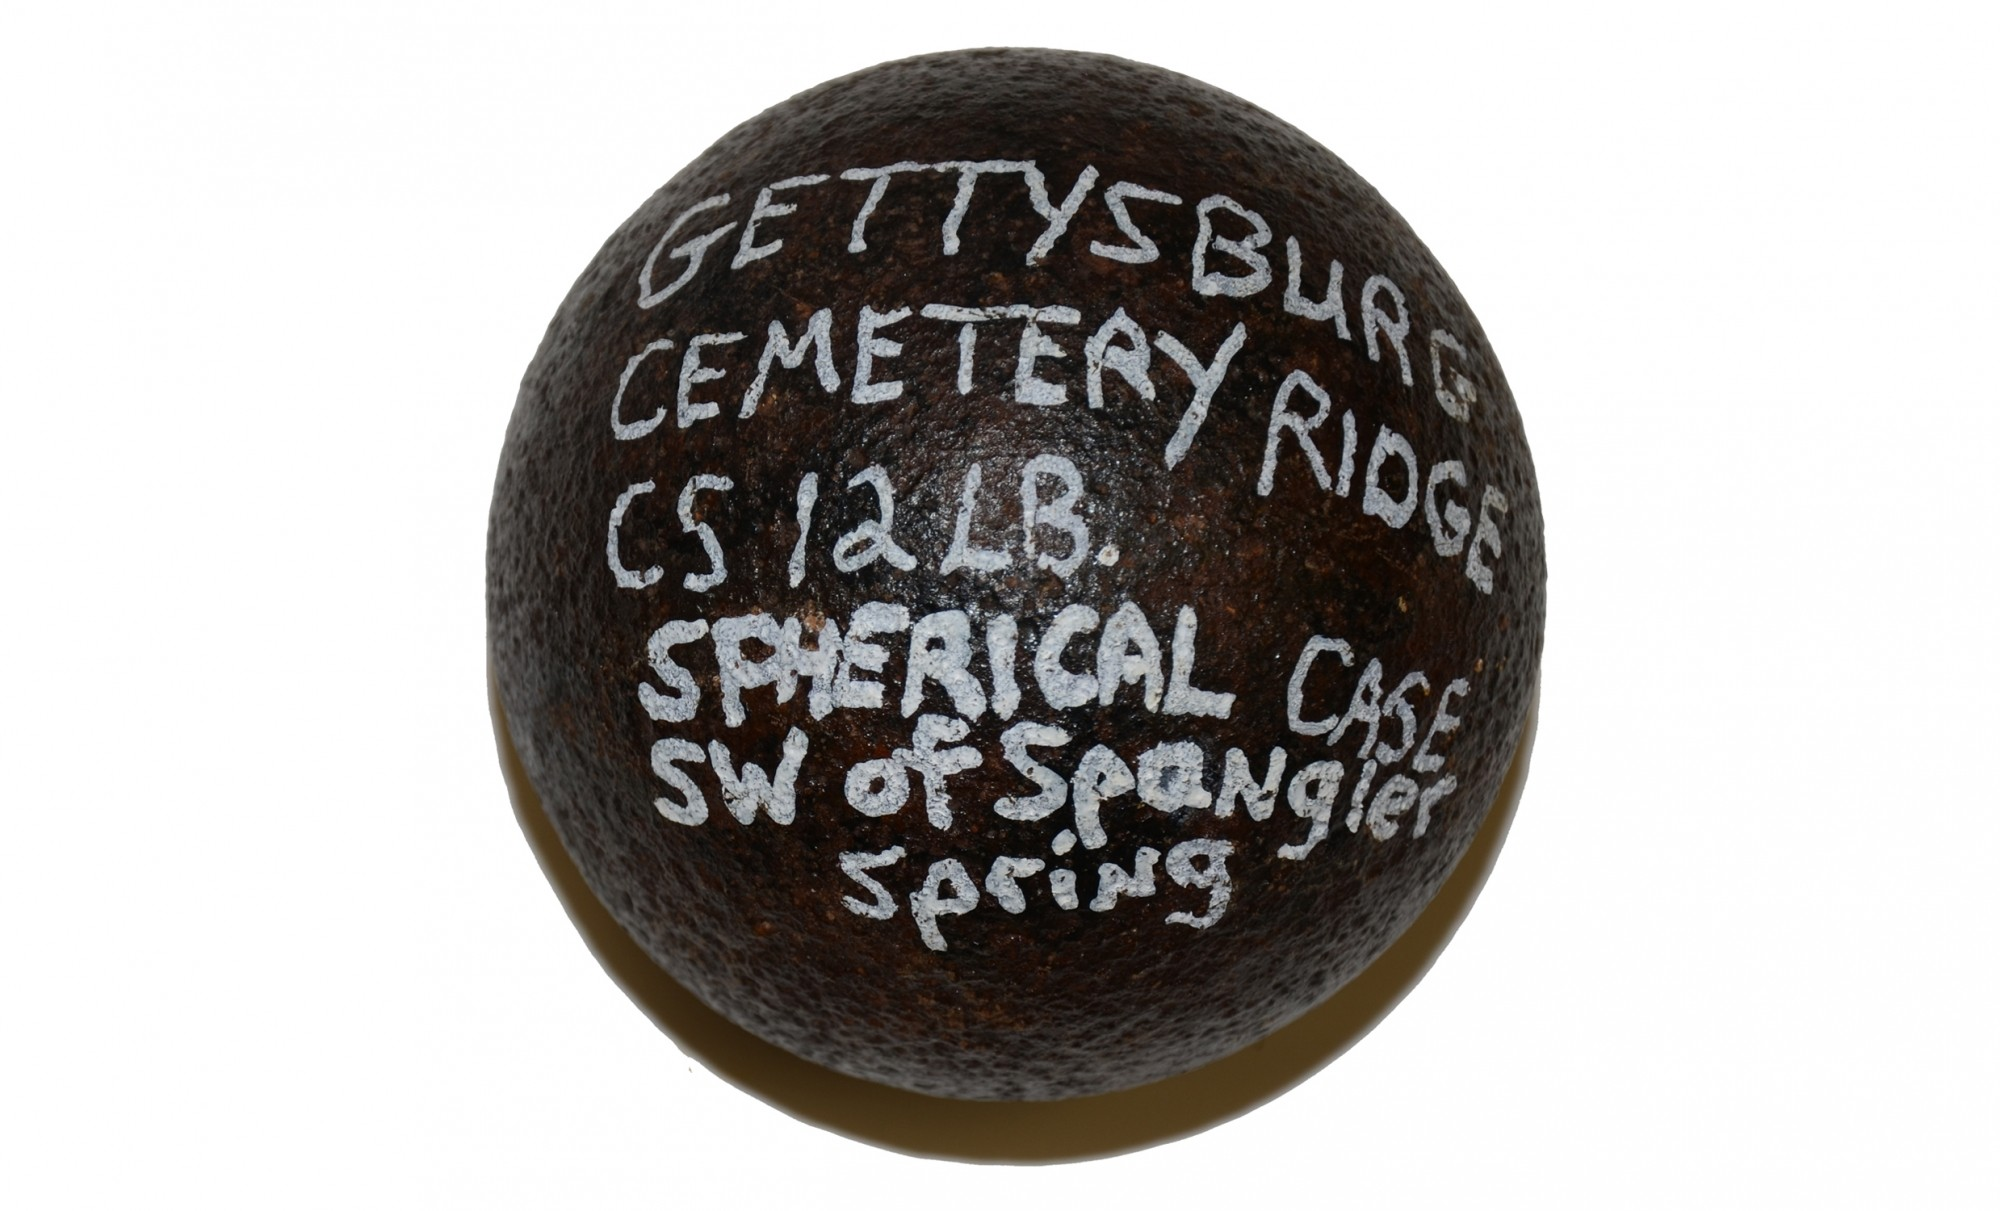 "CS 4.52"" 12 POUND SPHERICAL SHELL FOUND AT GETTYSBURG"